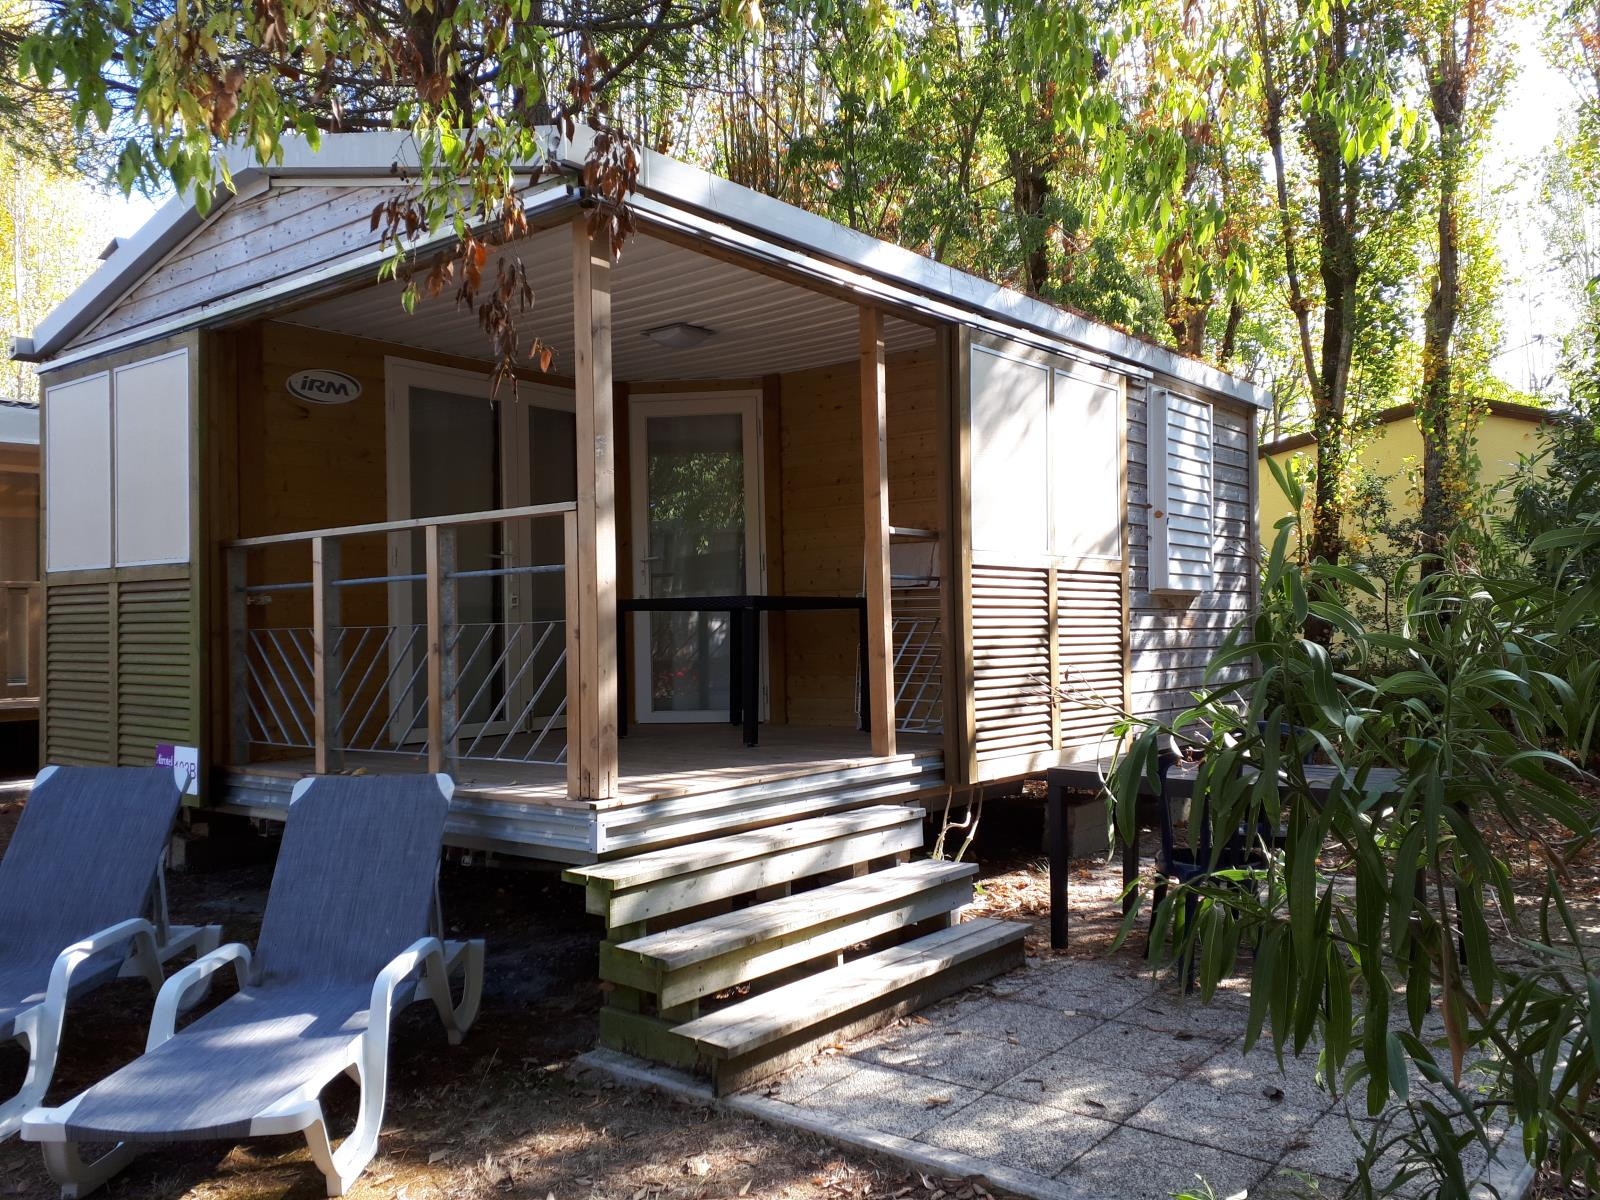 Locatifs - Chalet 1 Chambre 2 Pers 24 M2 (M) - Camping Airotel Oléron